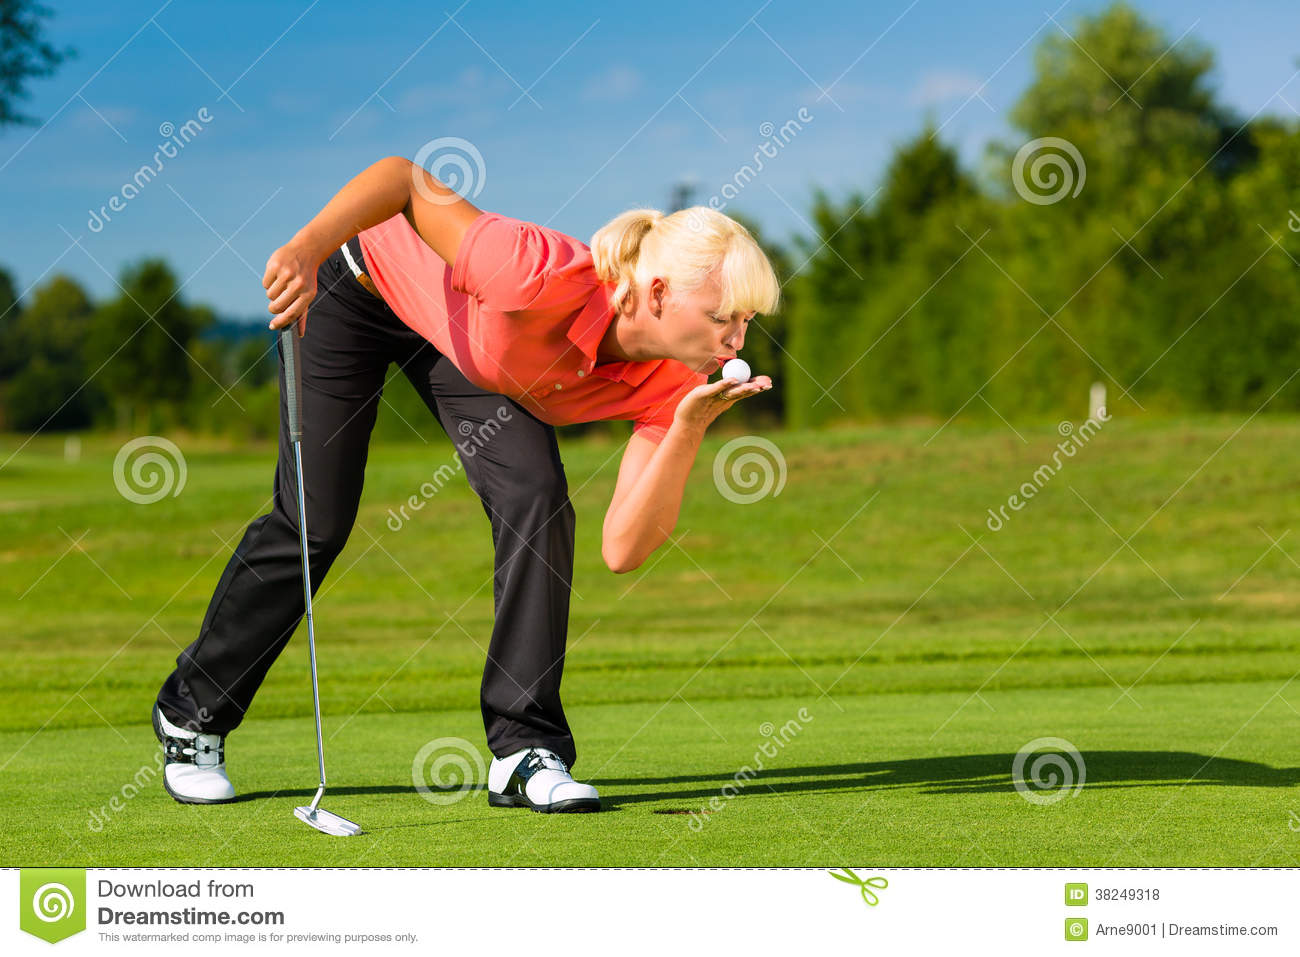 Two golfers on golf course stock image. Image of 2008